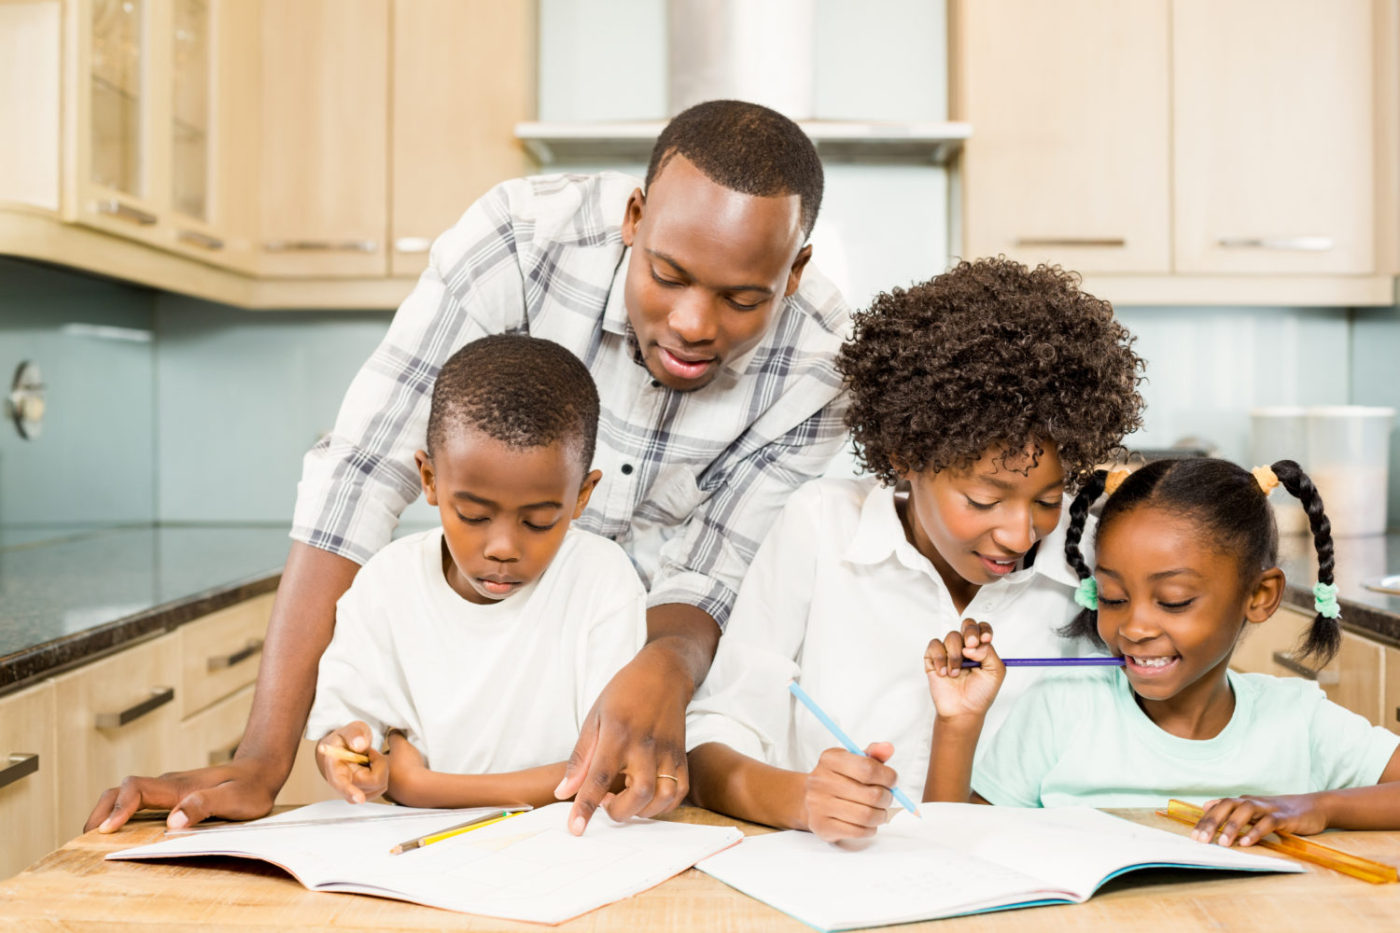 Black-parents-helping-children-with-homework-in-kitchen-1-1400x933, Getting ahead of the curve: Resources for parents who are laid off or struggling during the COVID-19 Crisis, Culture Currents